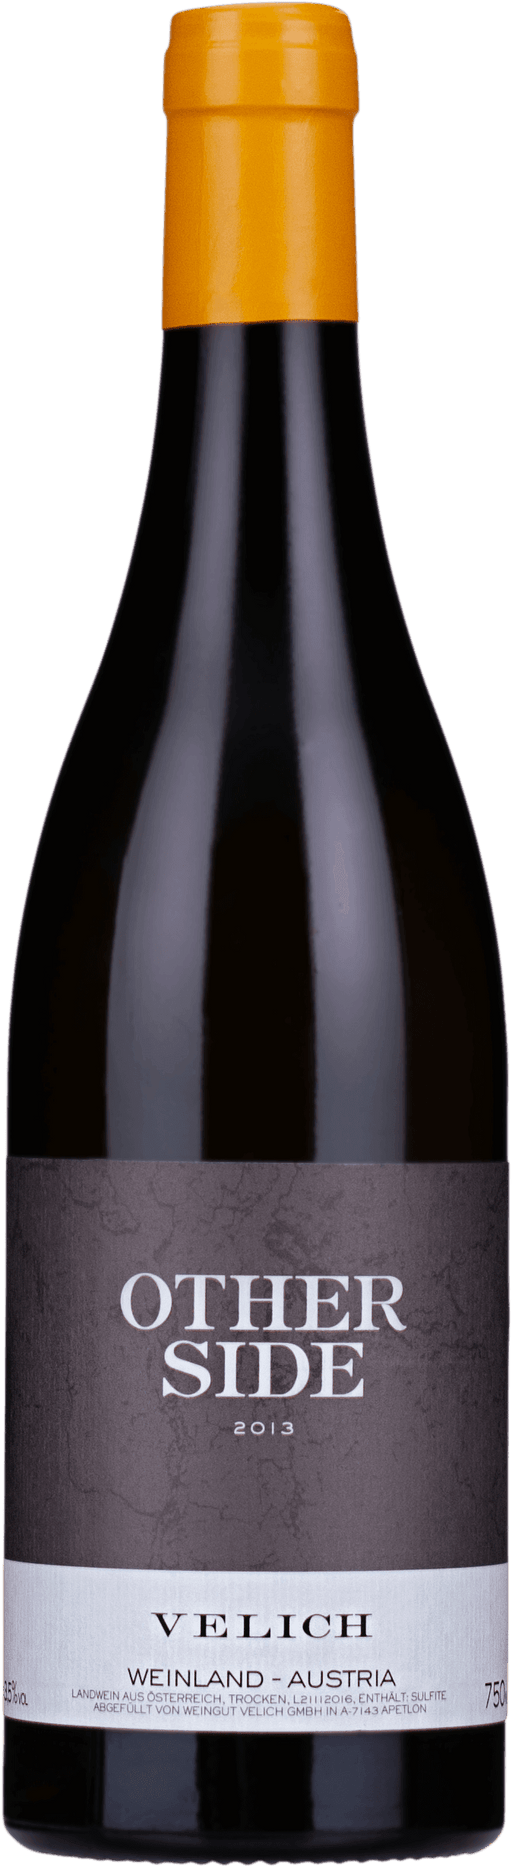 Chardonnay - Other Side - 2013